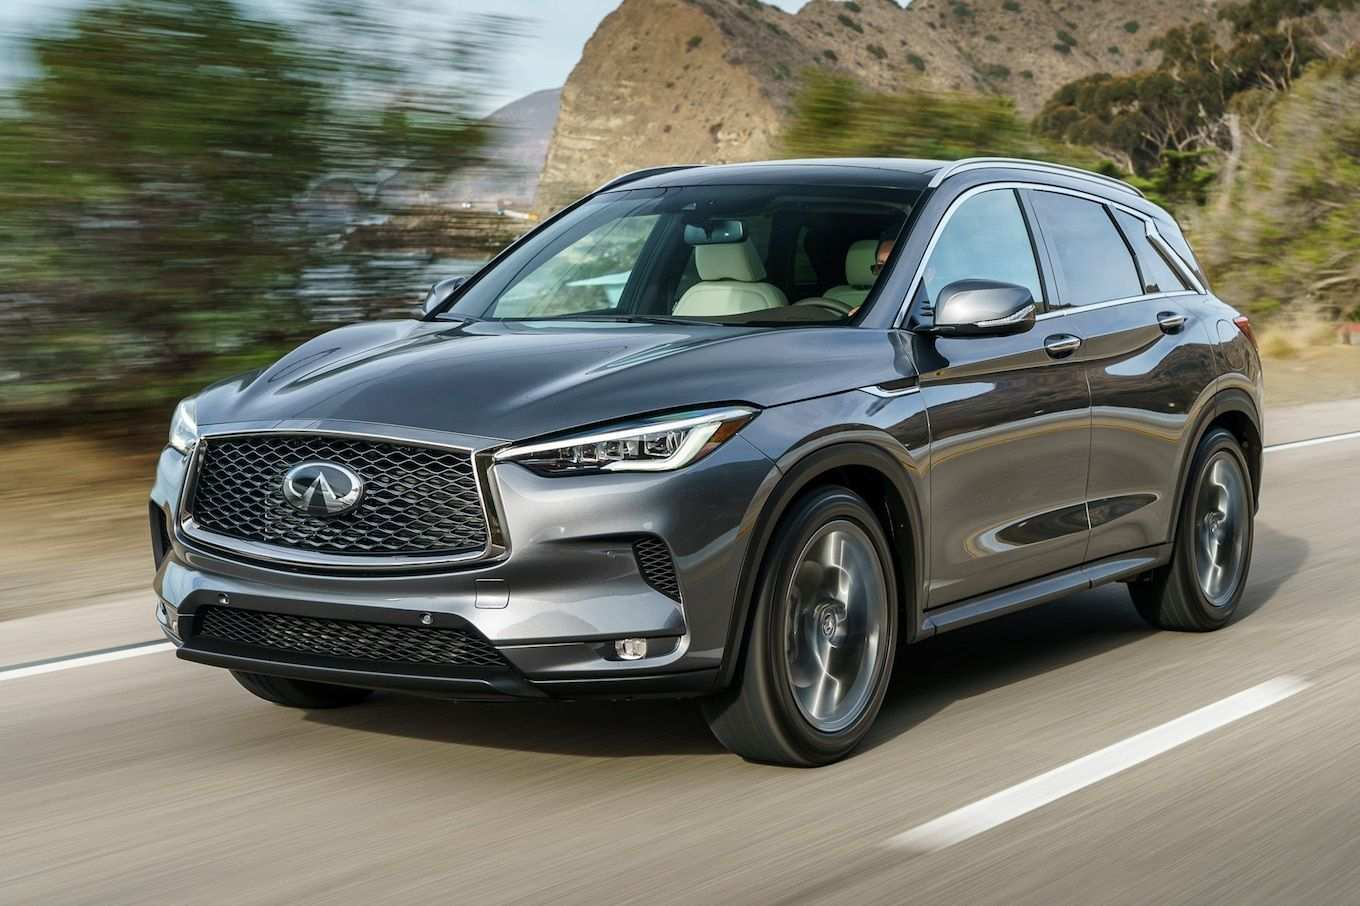 29 Gallery of 2020 Infiniti Qx50 Exterior Colors History by 2020 Infiniti Qx50 Exterior Colors